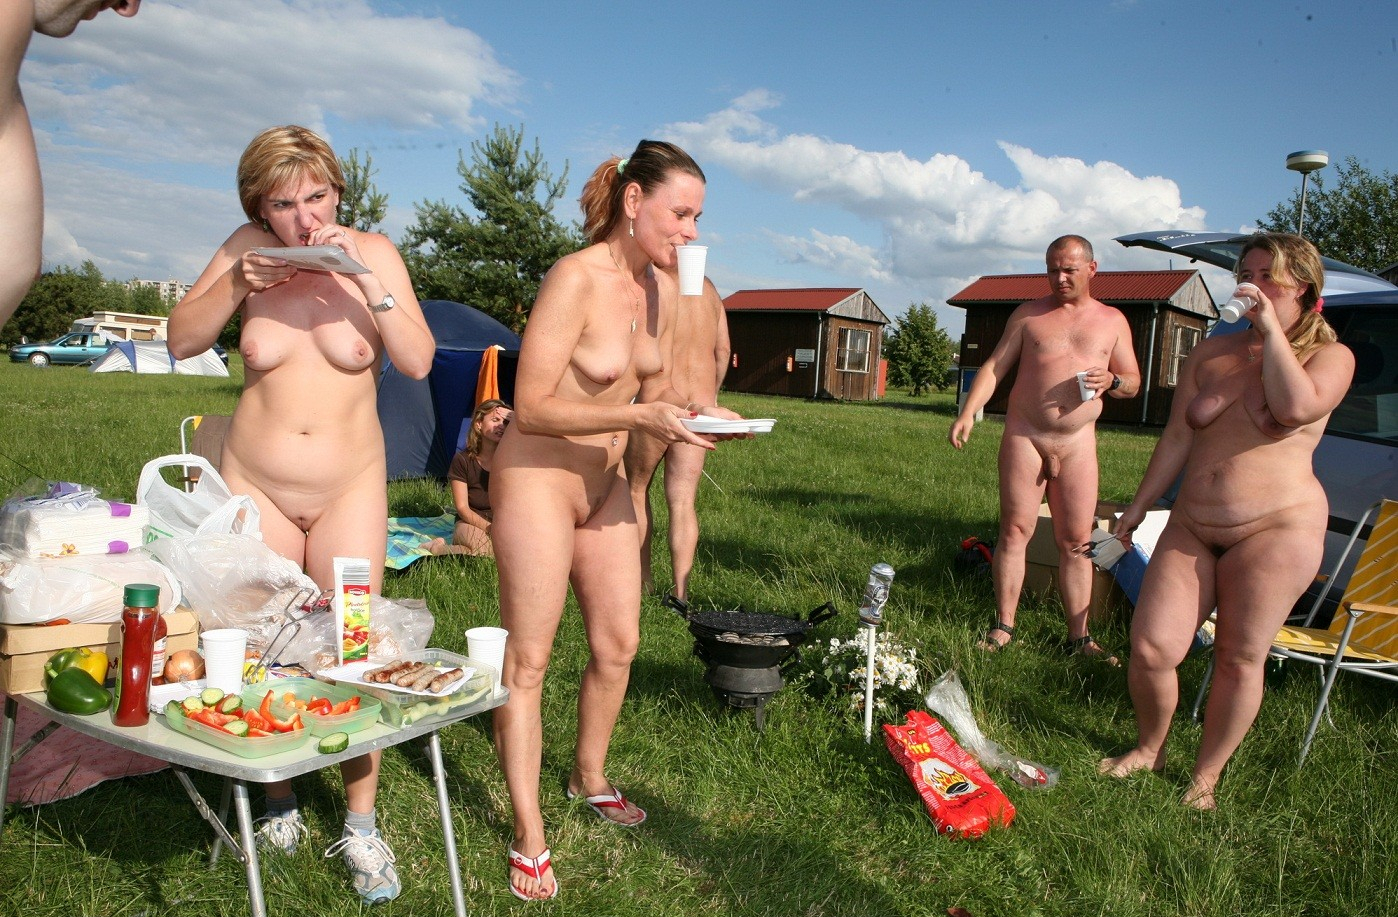 My 5 #nudist resolutions for 2016